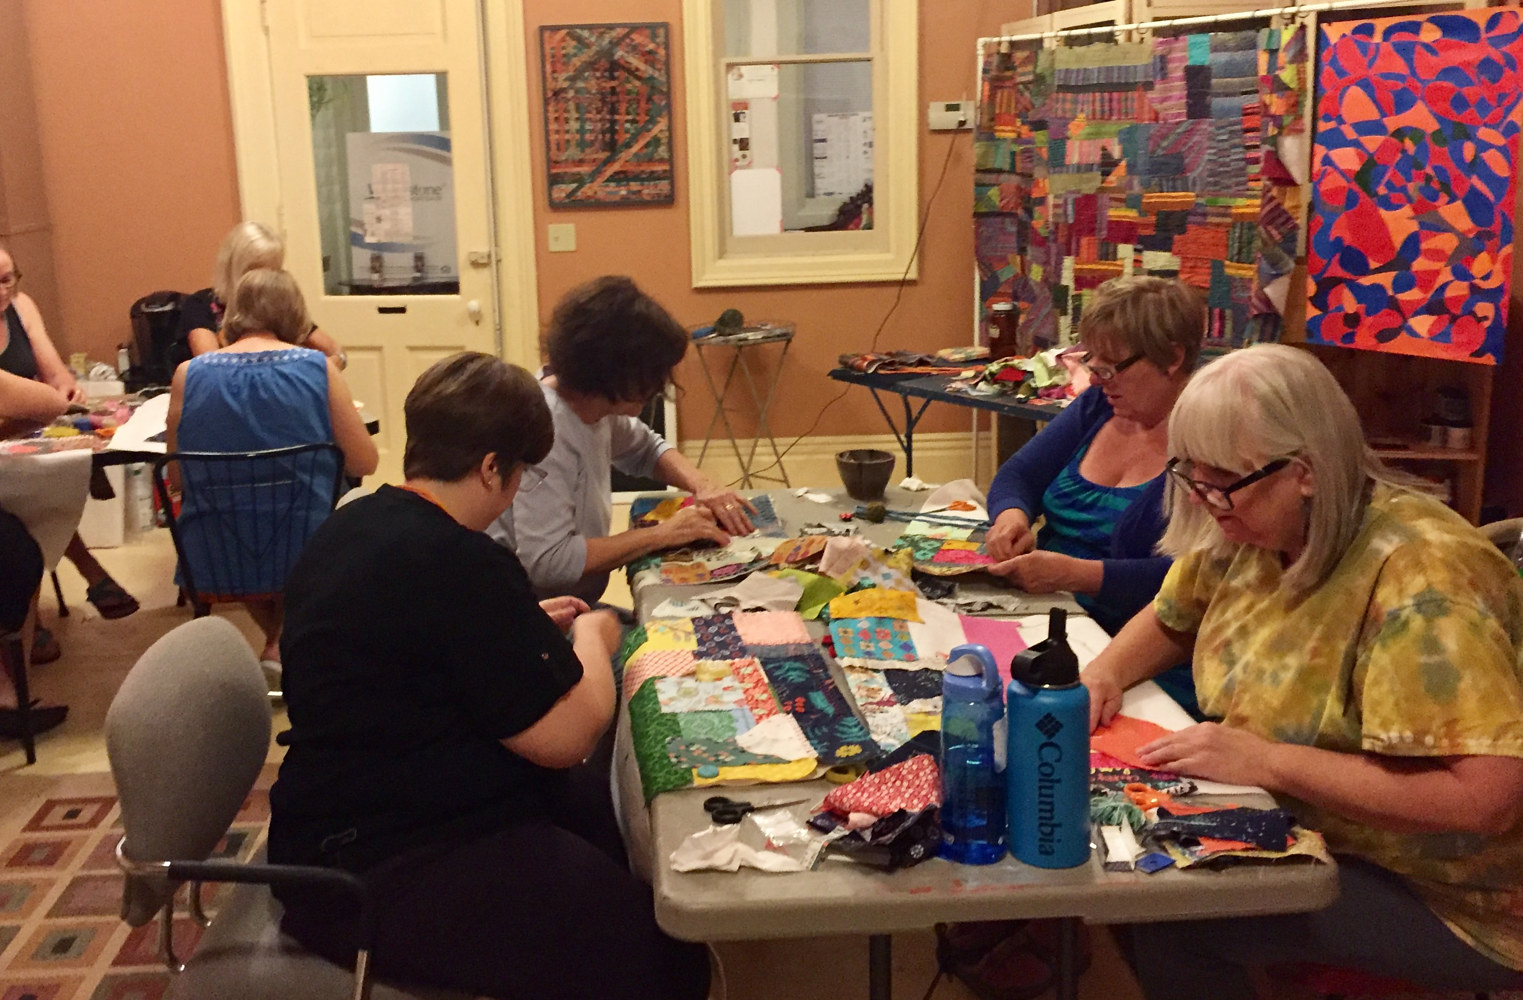 Intro to slow-stitching quilting collage, Maker-space studio 2017 by Maday Delgado